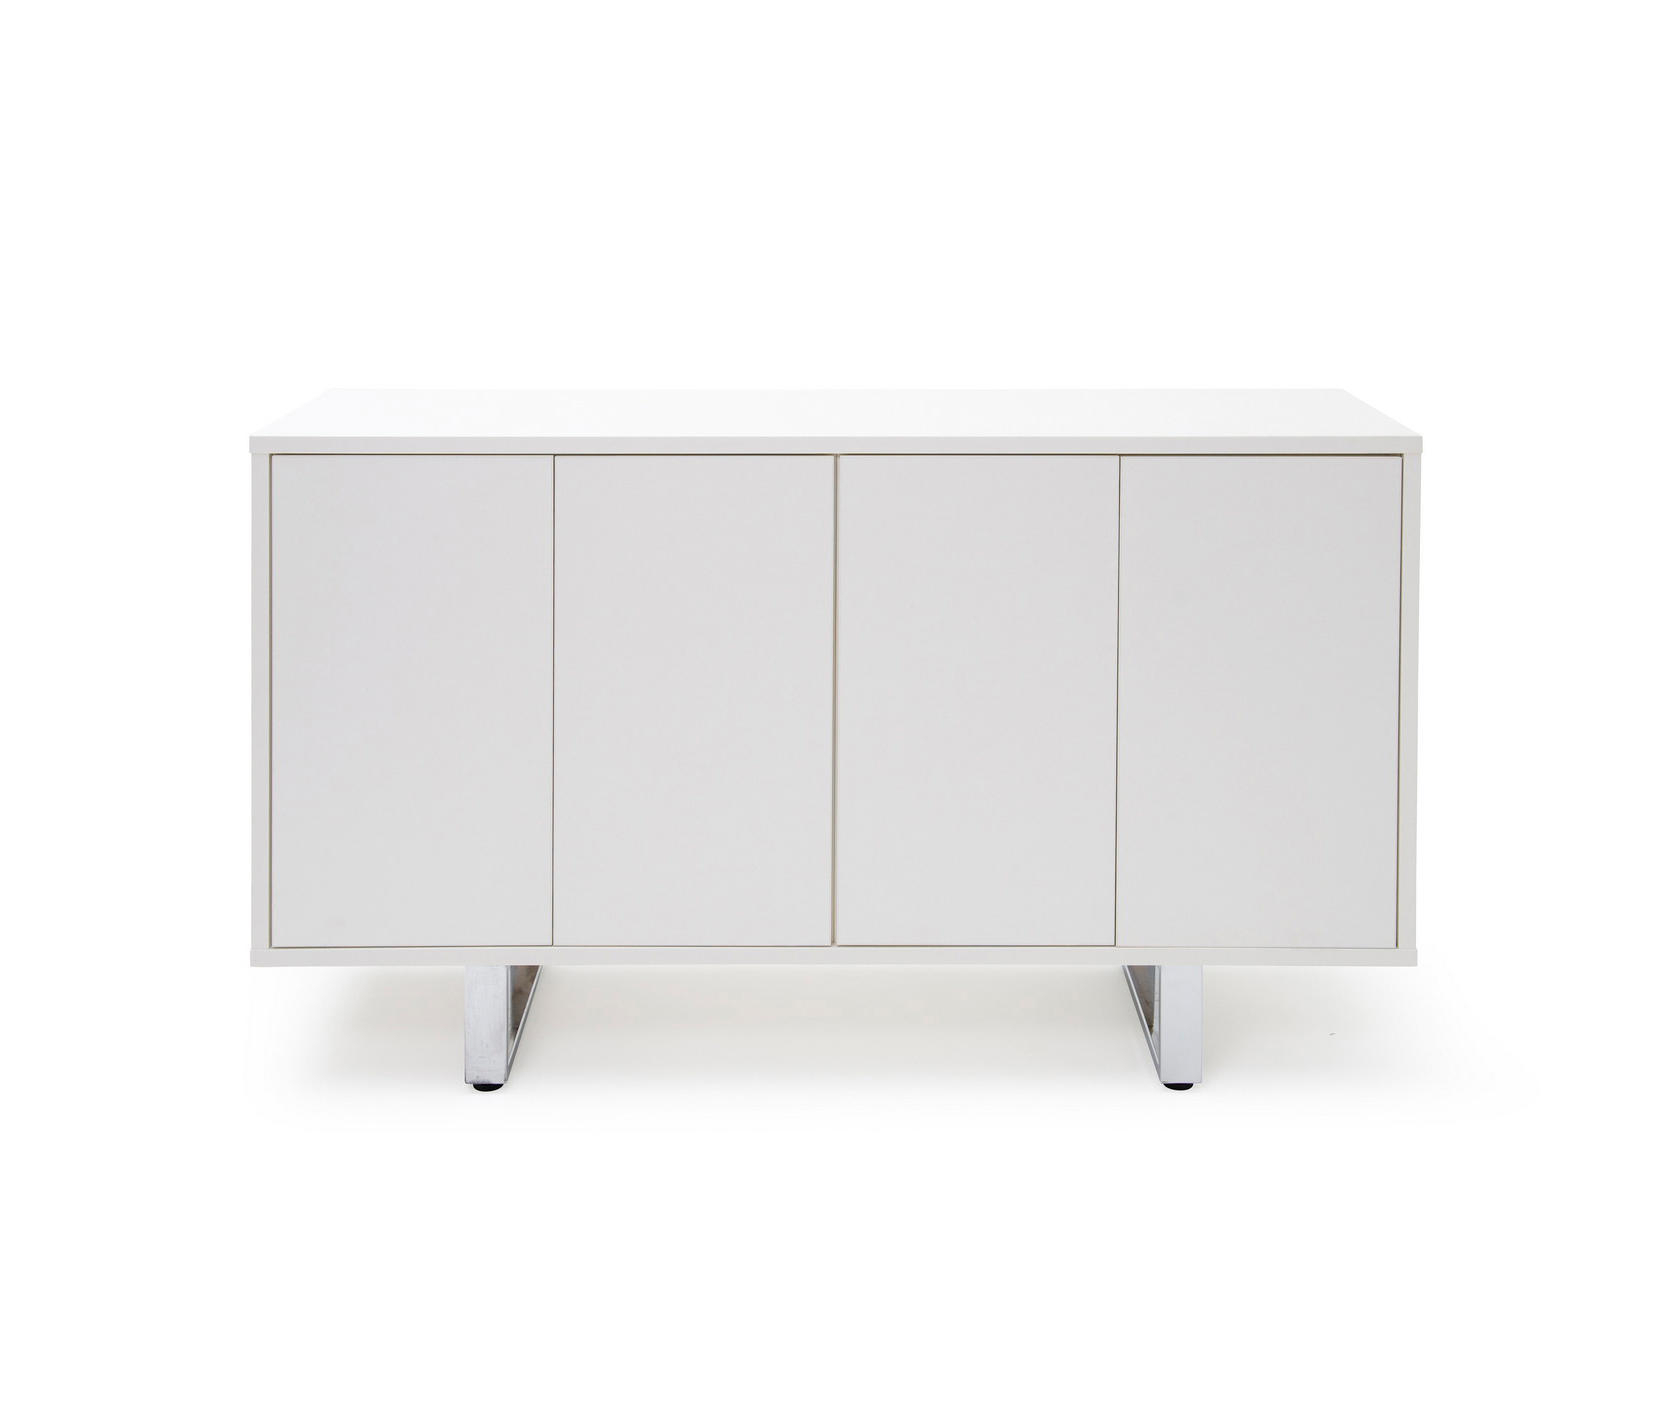 Andante – Sideboards / Kommoden Von Spacestor | Architonic In Newest Palisade Sideboards (#1 of 20)